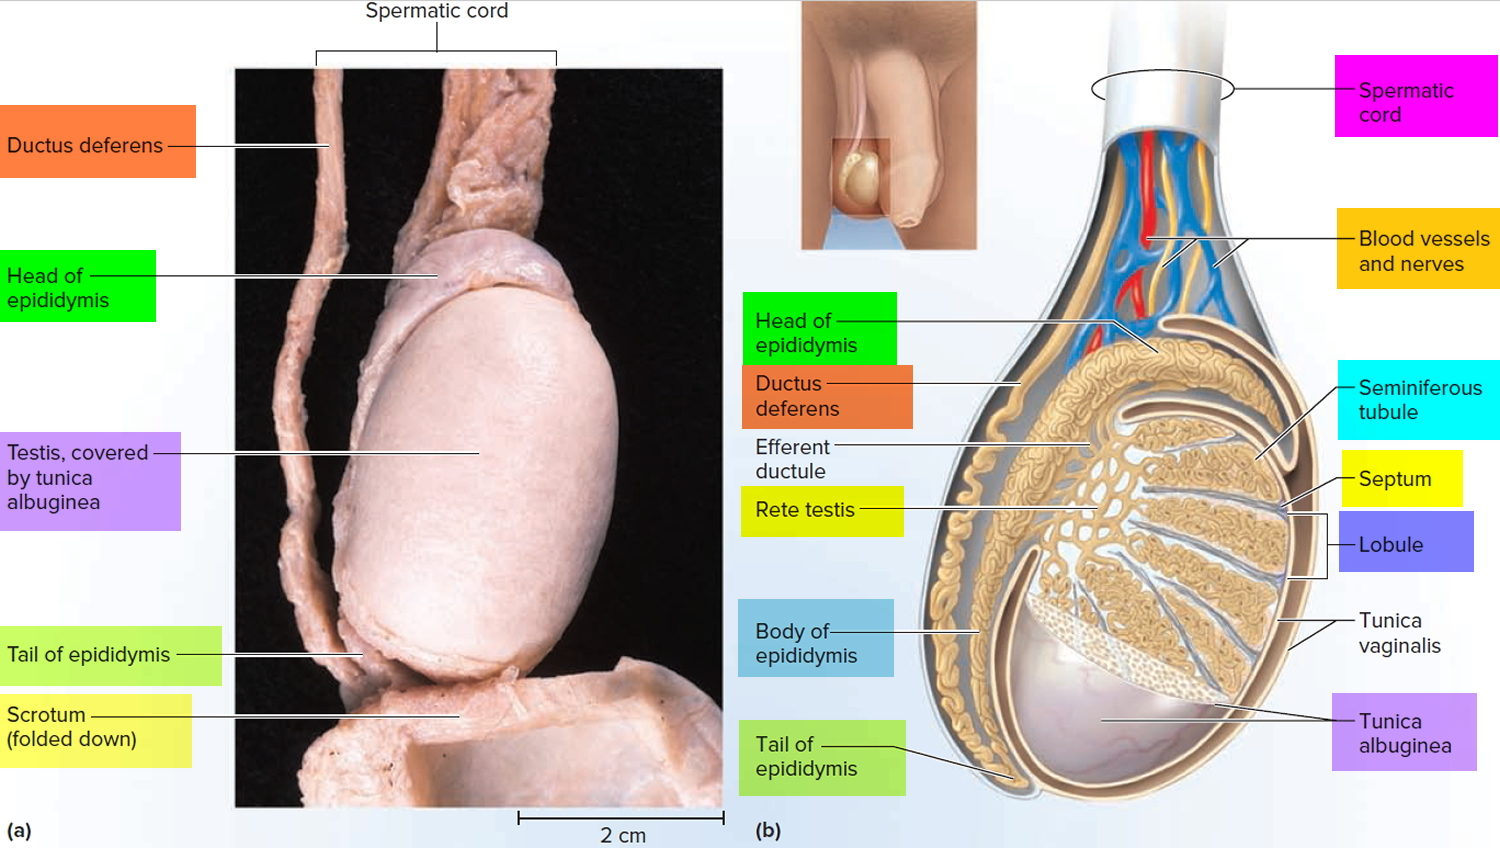 testicle anatomy